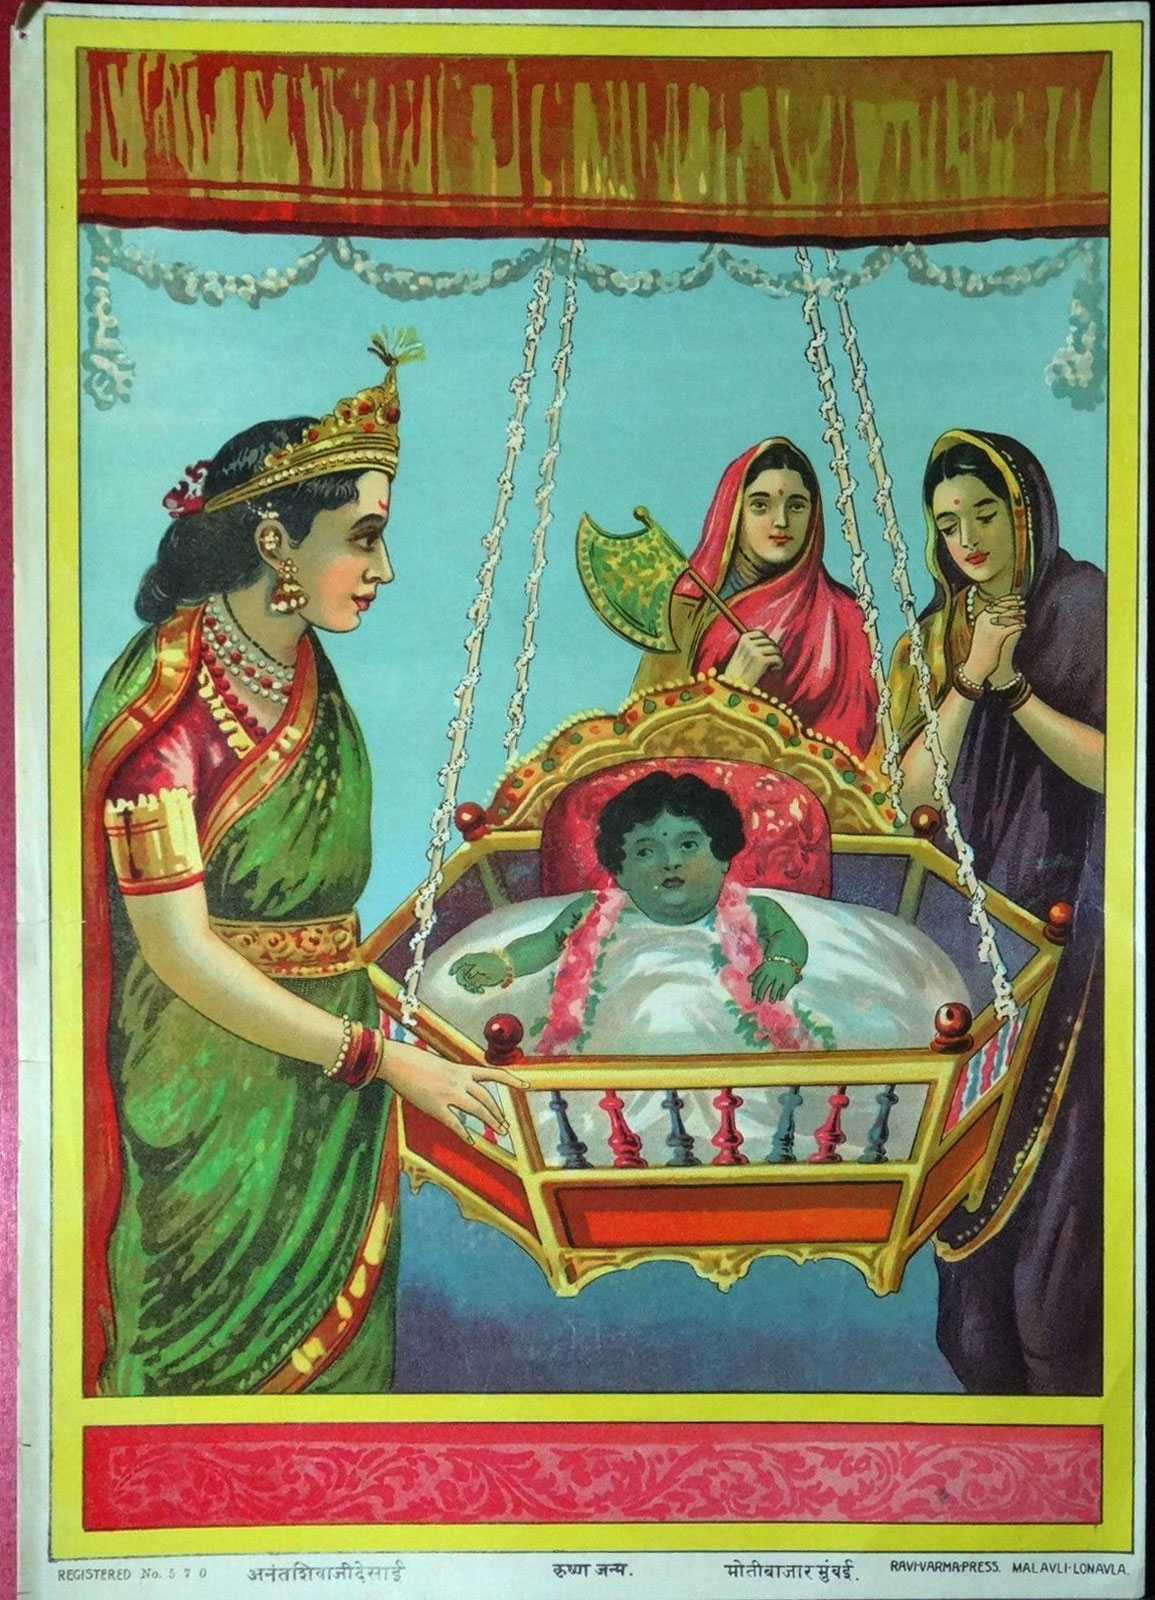 Birth of Krishna - Vintage Olegraph/Lithograph Print, Ravi Varma Press c1910-20